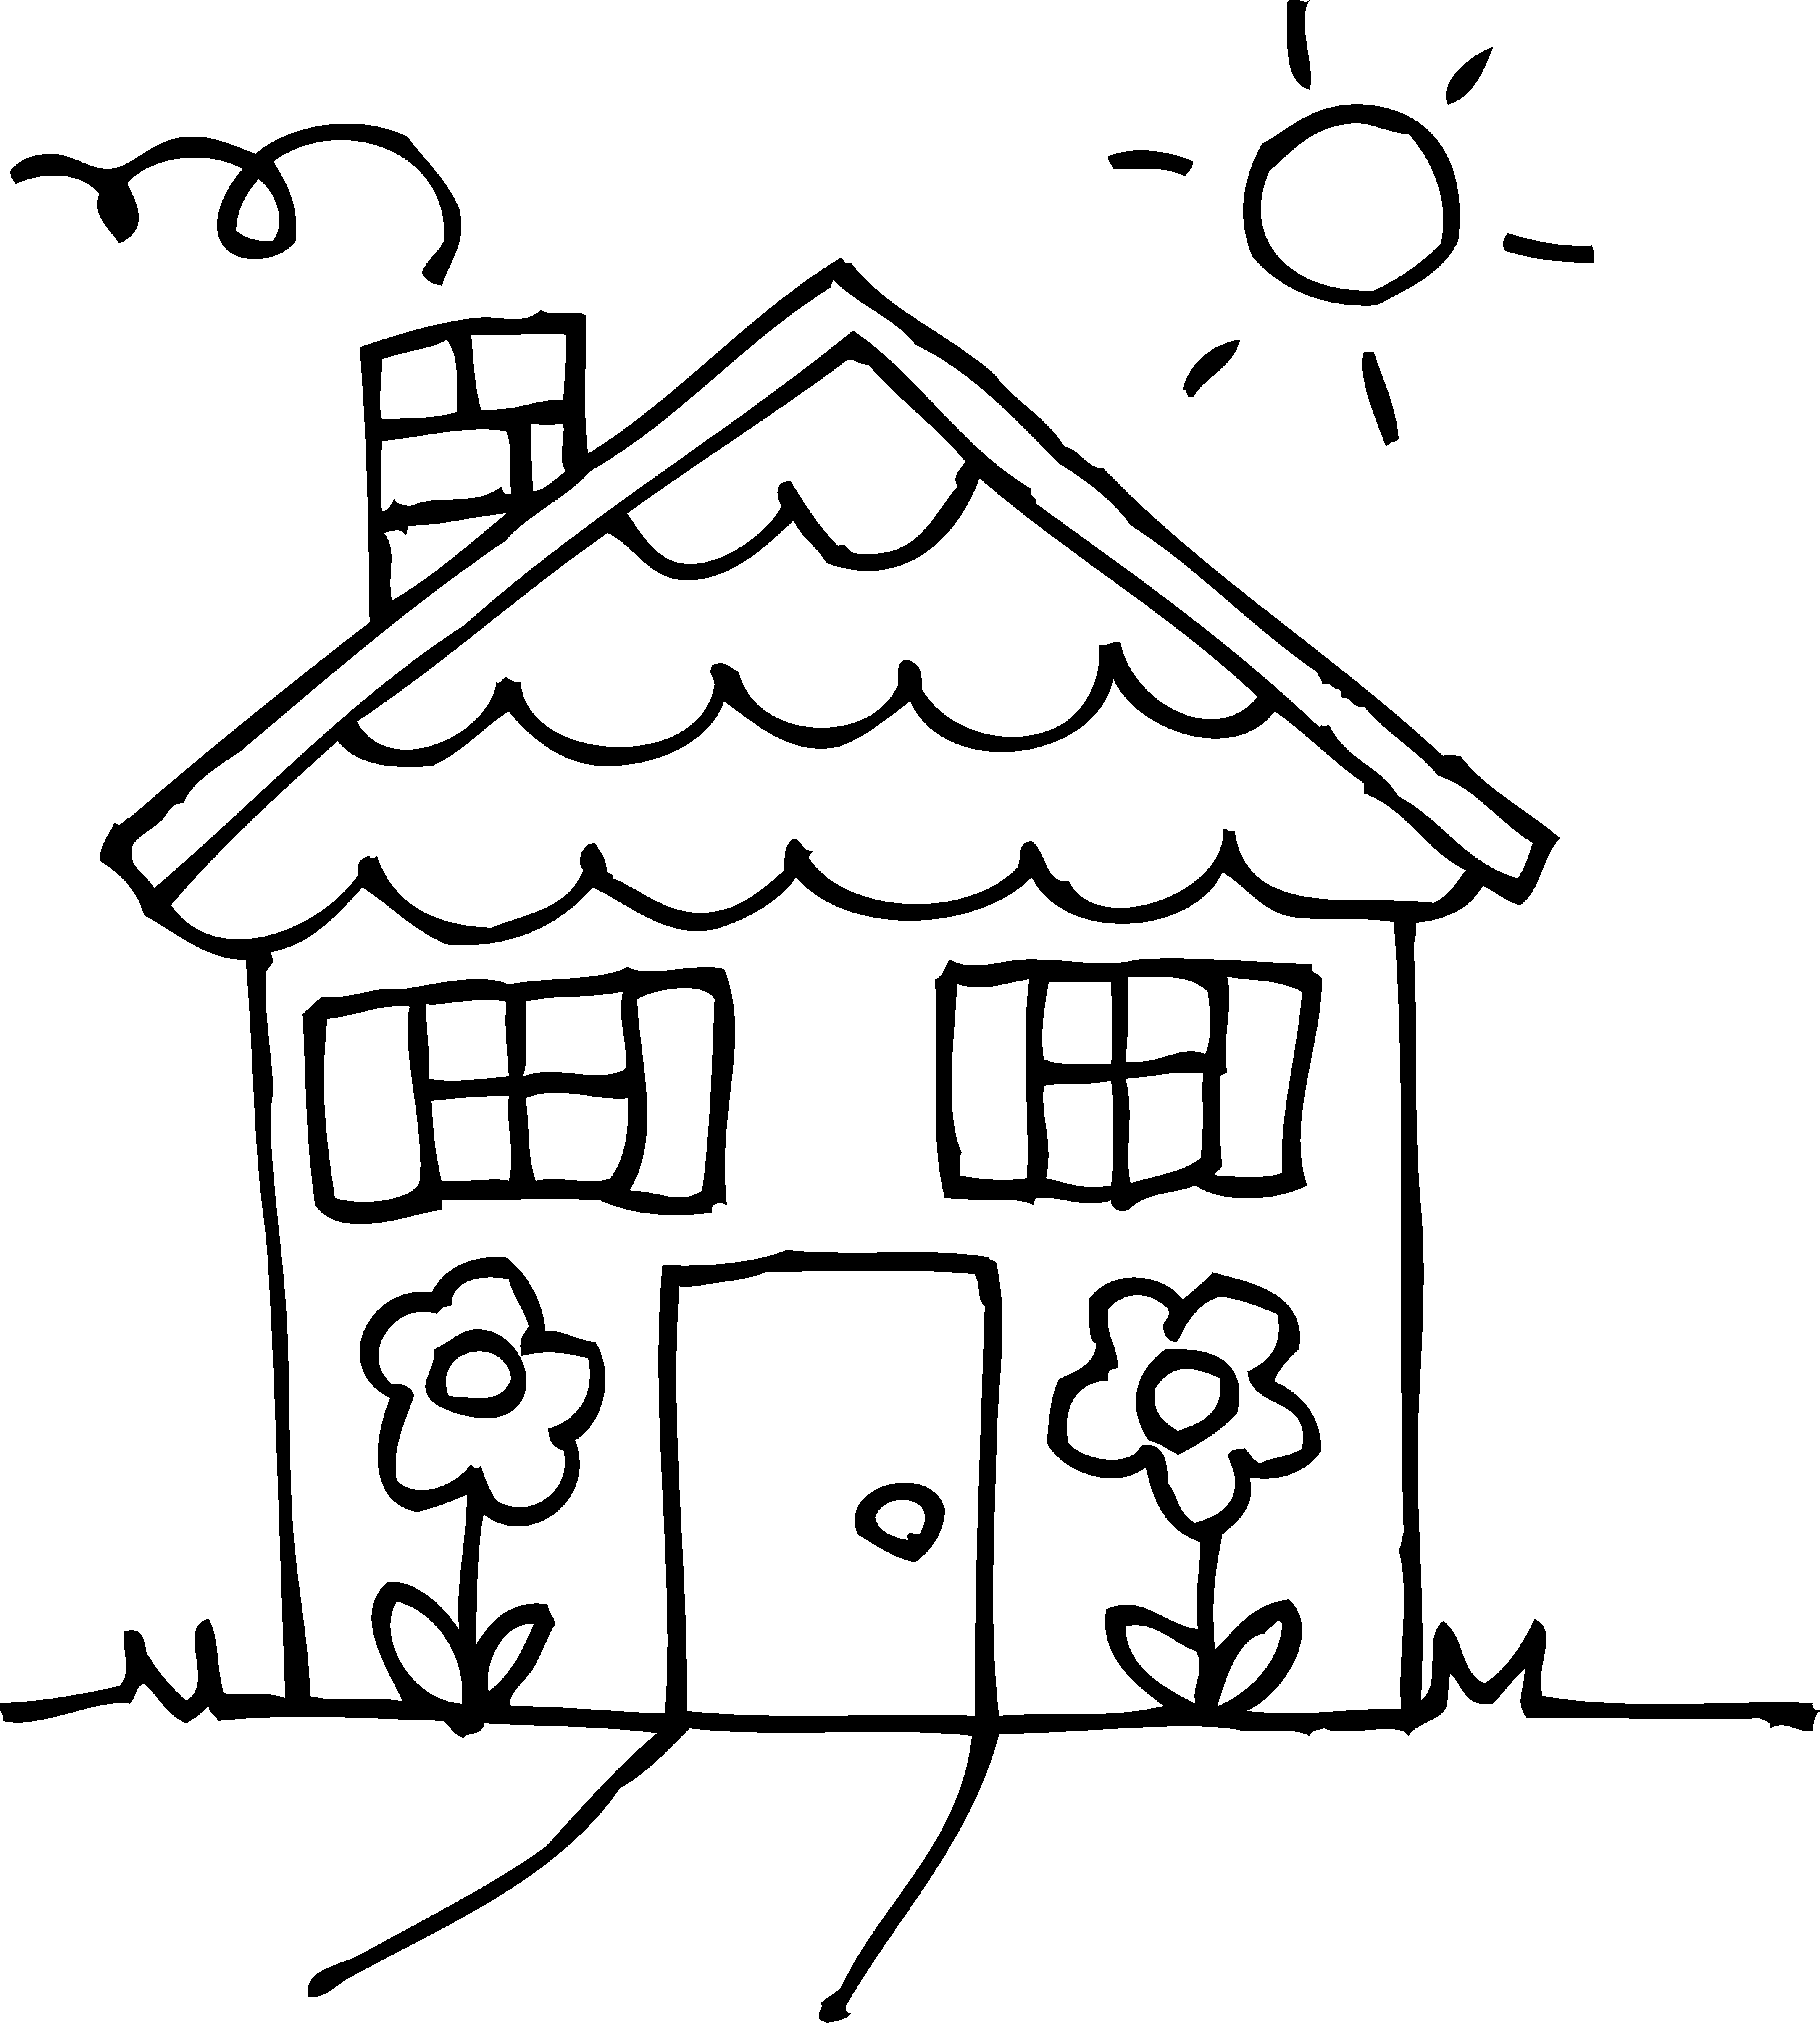 House black and white house clipart black and white clip art library